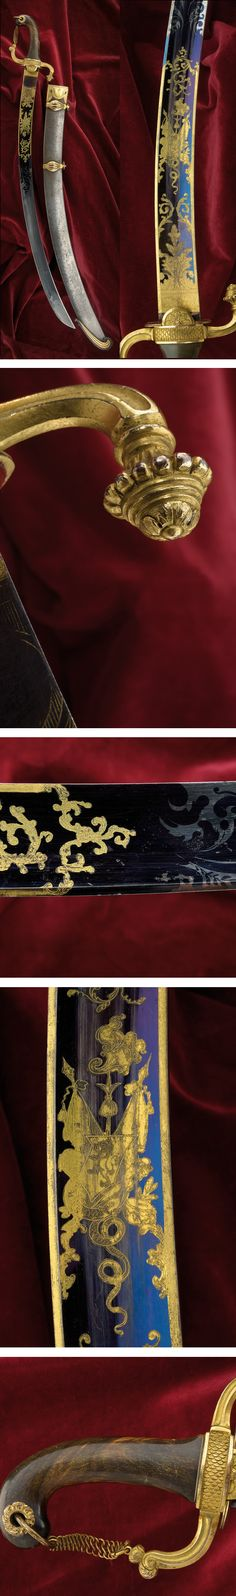 An extraordinary light cavalry officers napoleonic epoch sabre: provenance: England dating: circa 1800